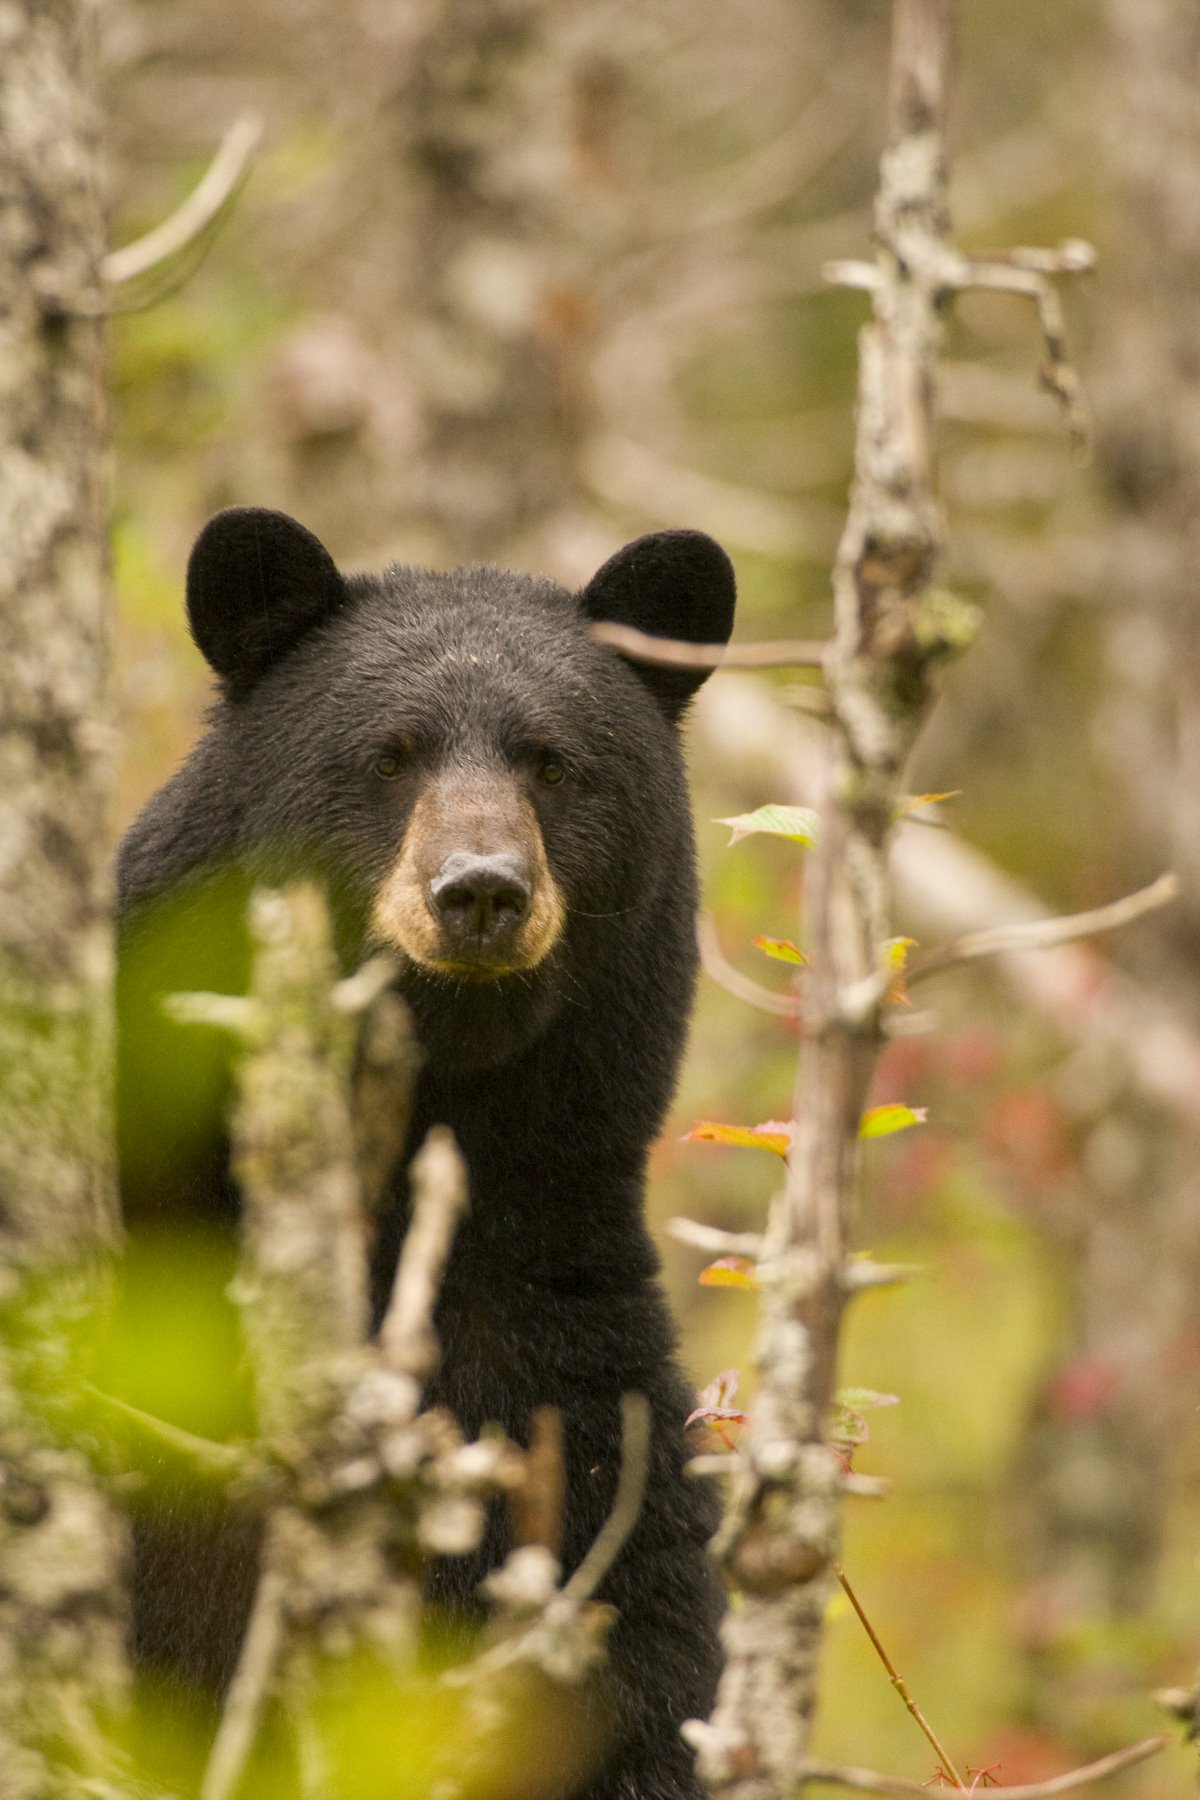 Bears stand to threaten, but also to observe.